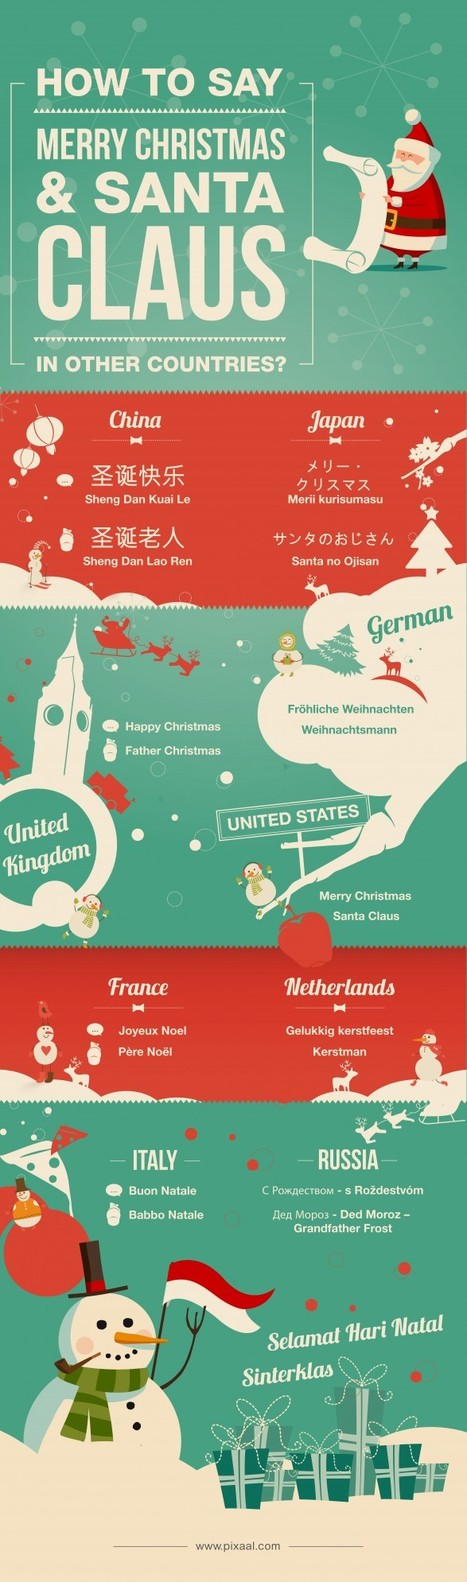 How to say Merry Christmas and Santa Claus in other countries [Infographic] - AvatarGeneration | AvatarGeneration | Scoop.it